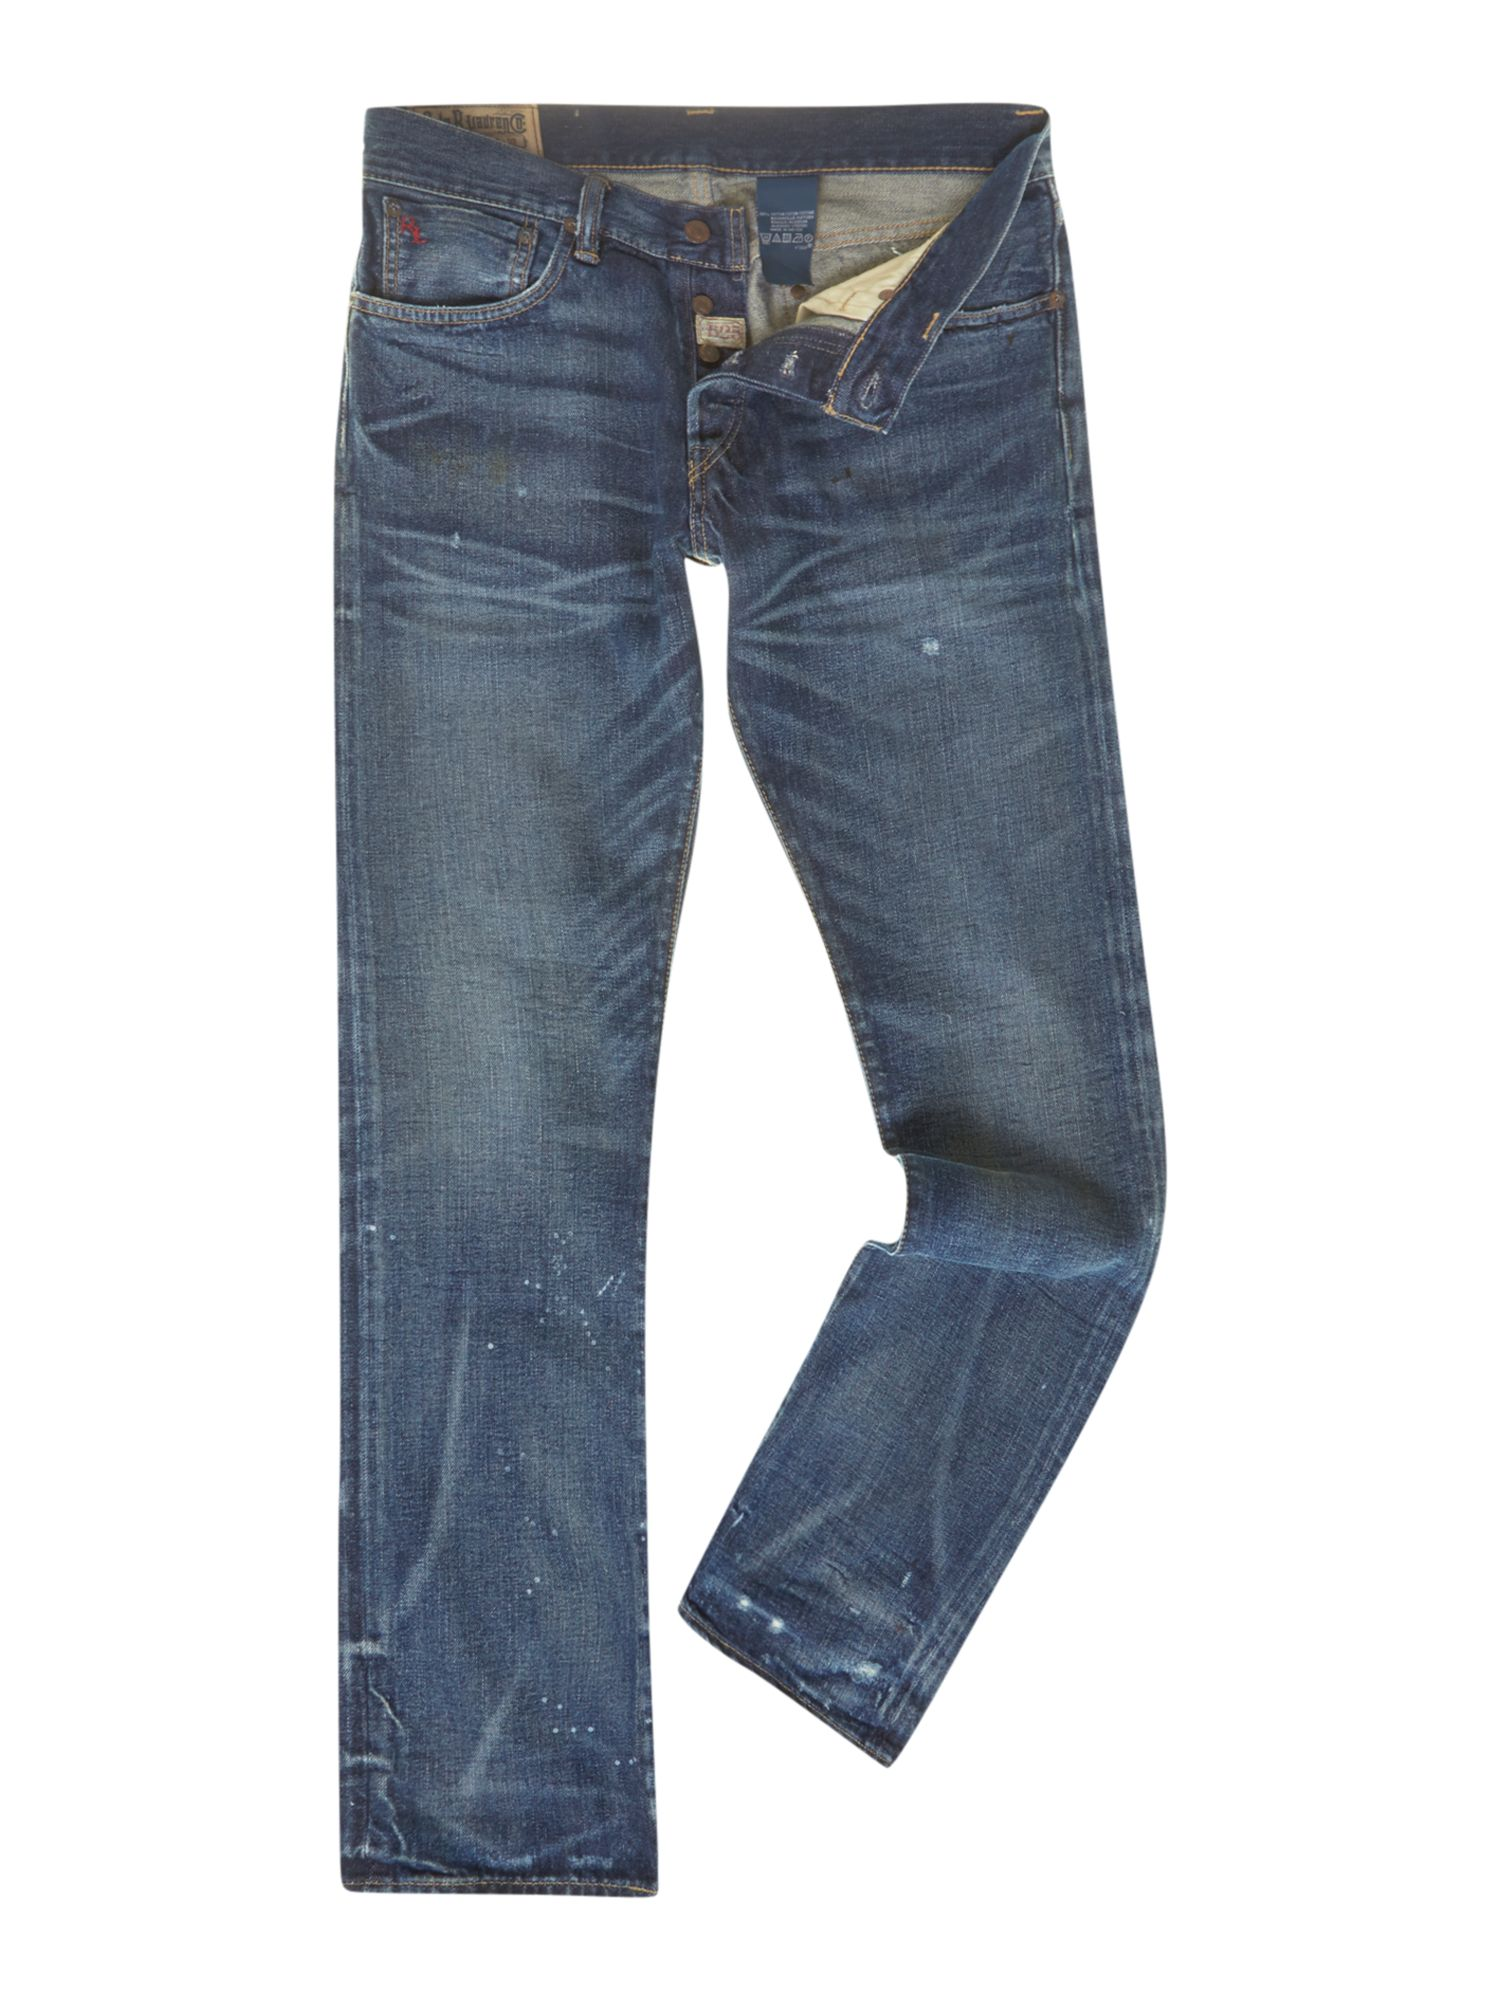 Varick slim fit jeans